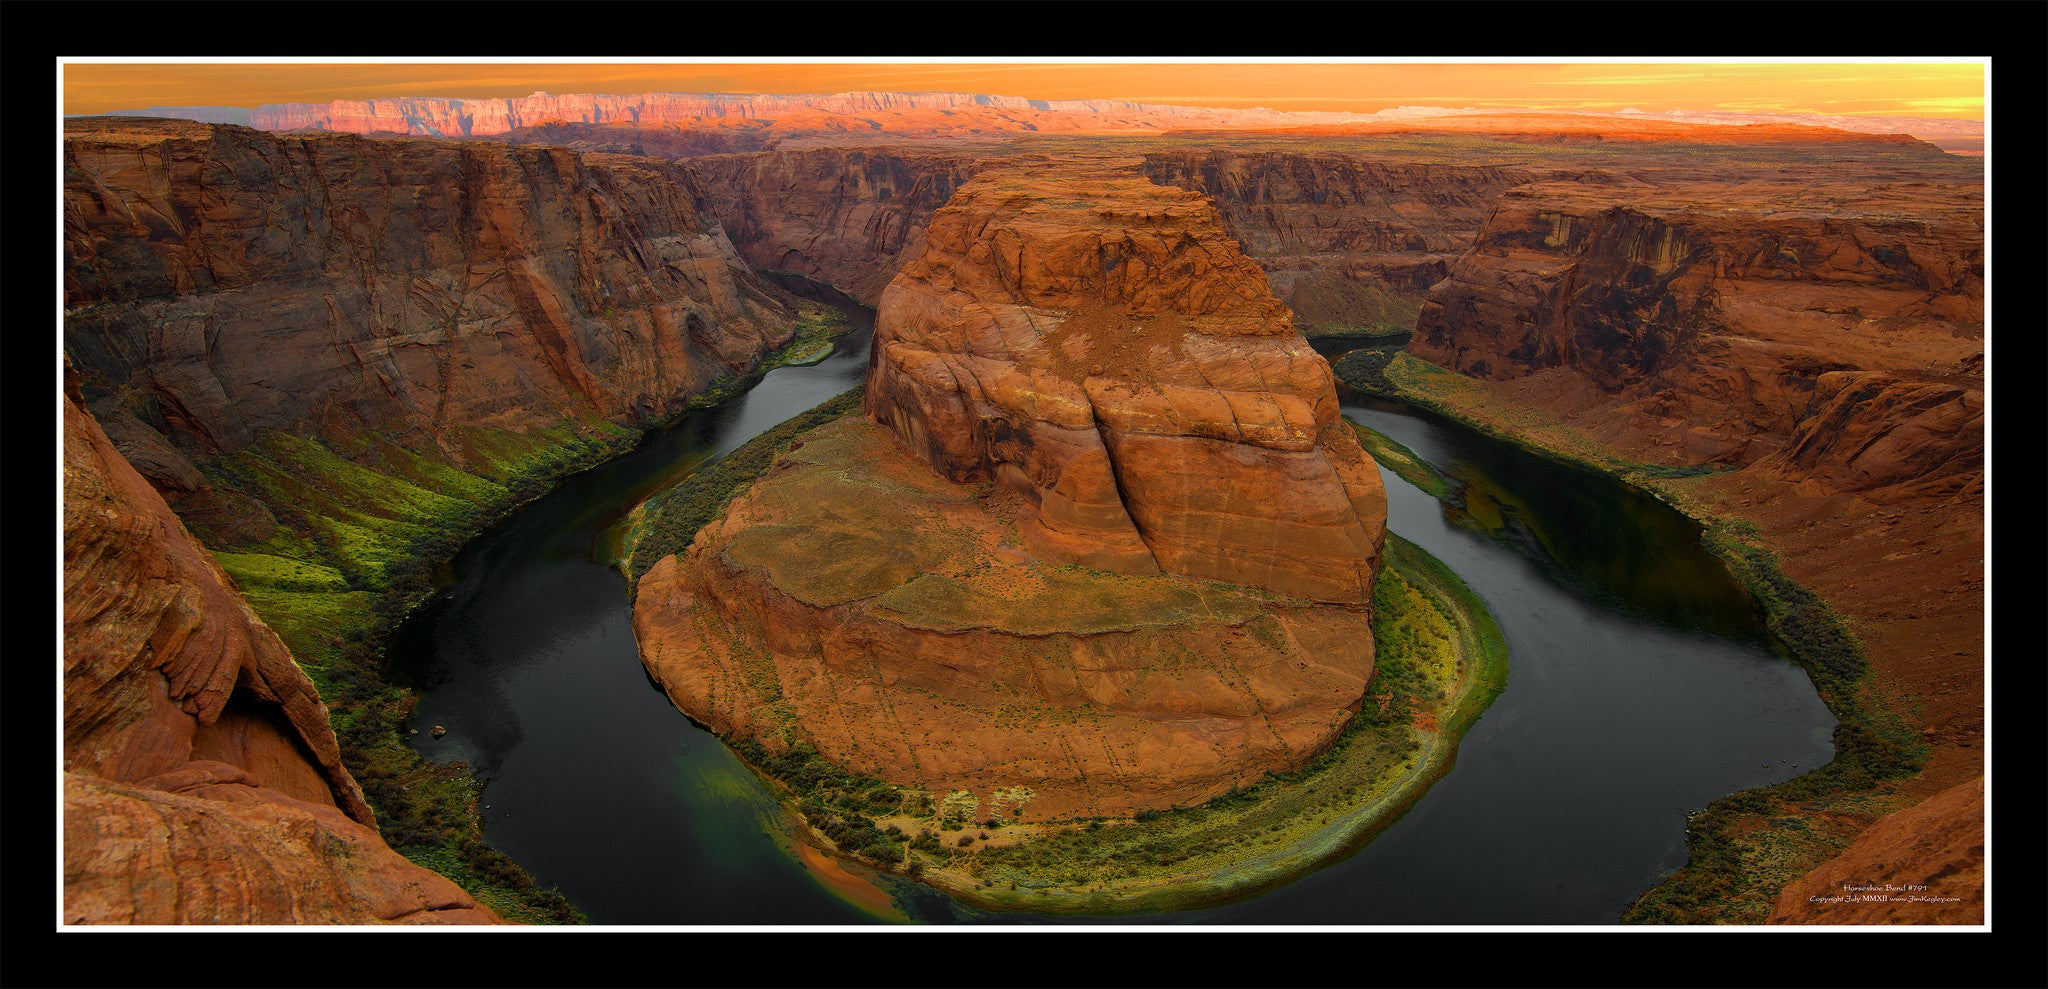 #791 Horseshoe Bend